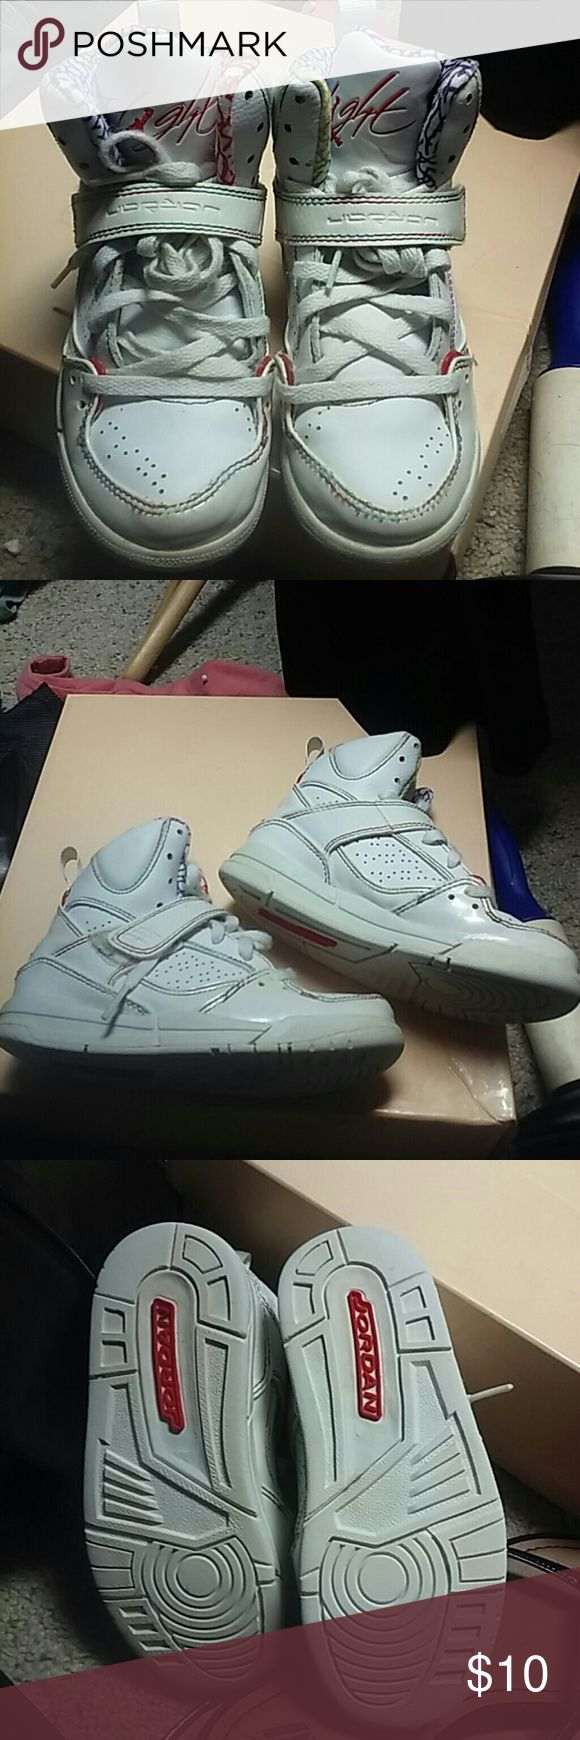 Girls Jordans Flight shoes These are is good condition some wear but lots of life left in these Jordan Shoes Sneakers